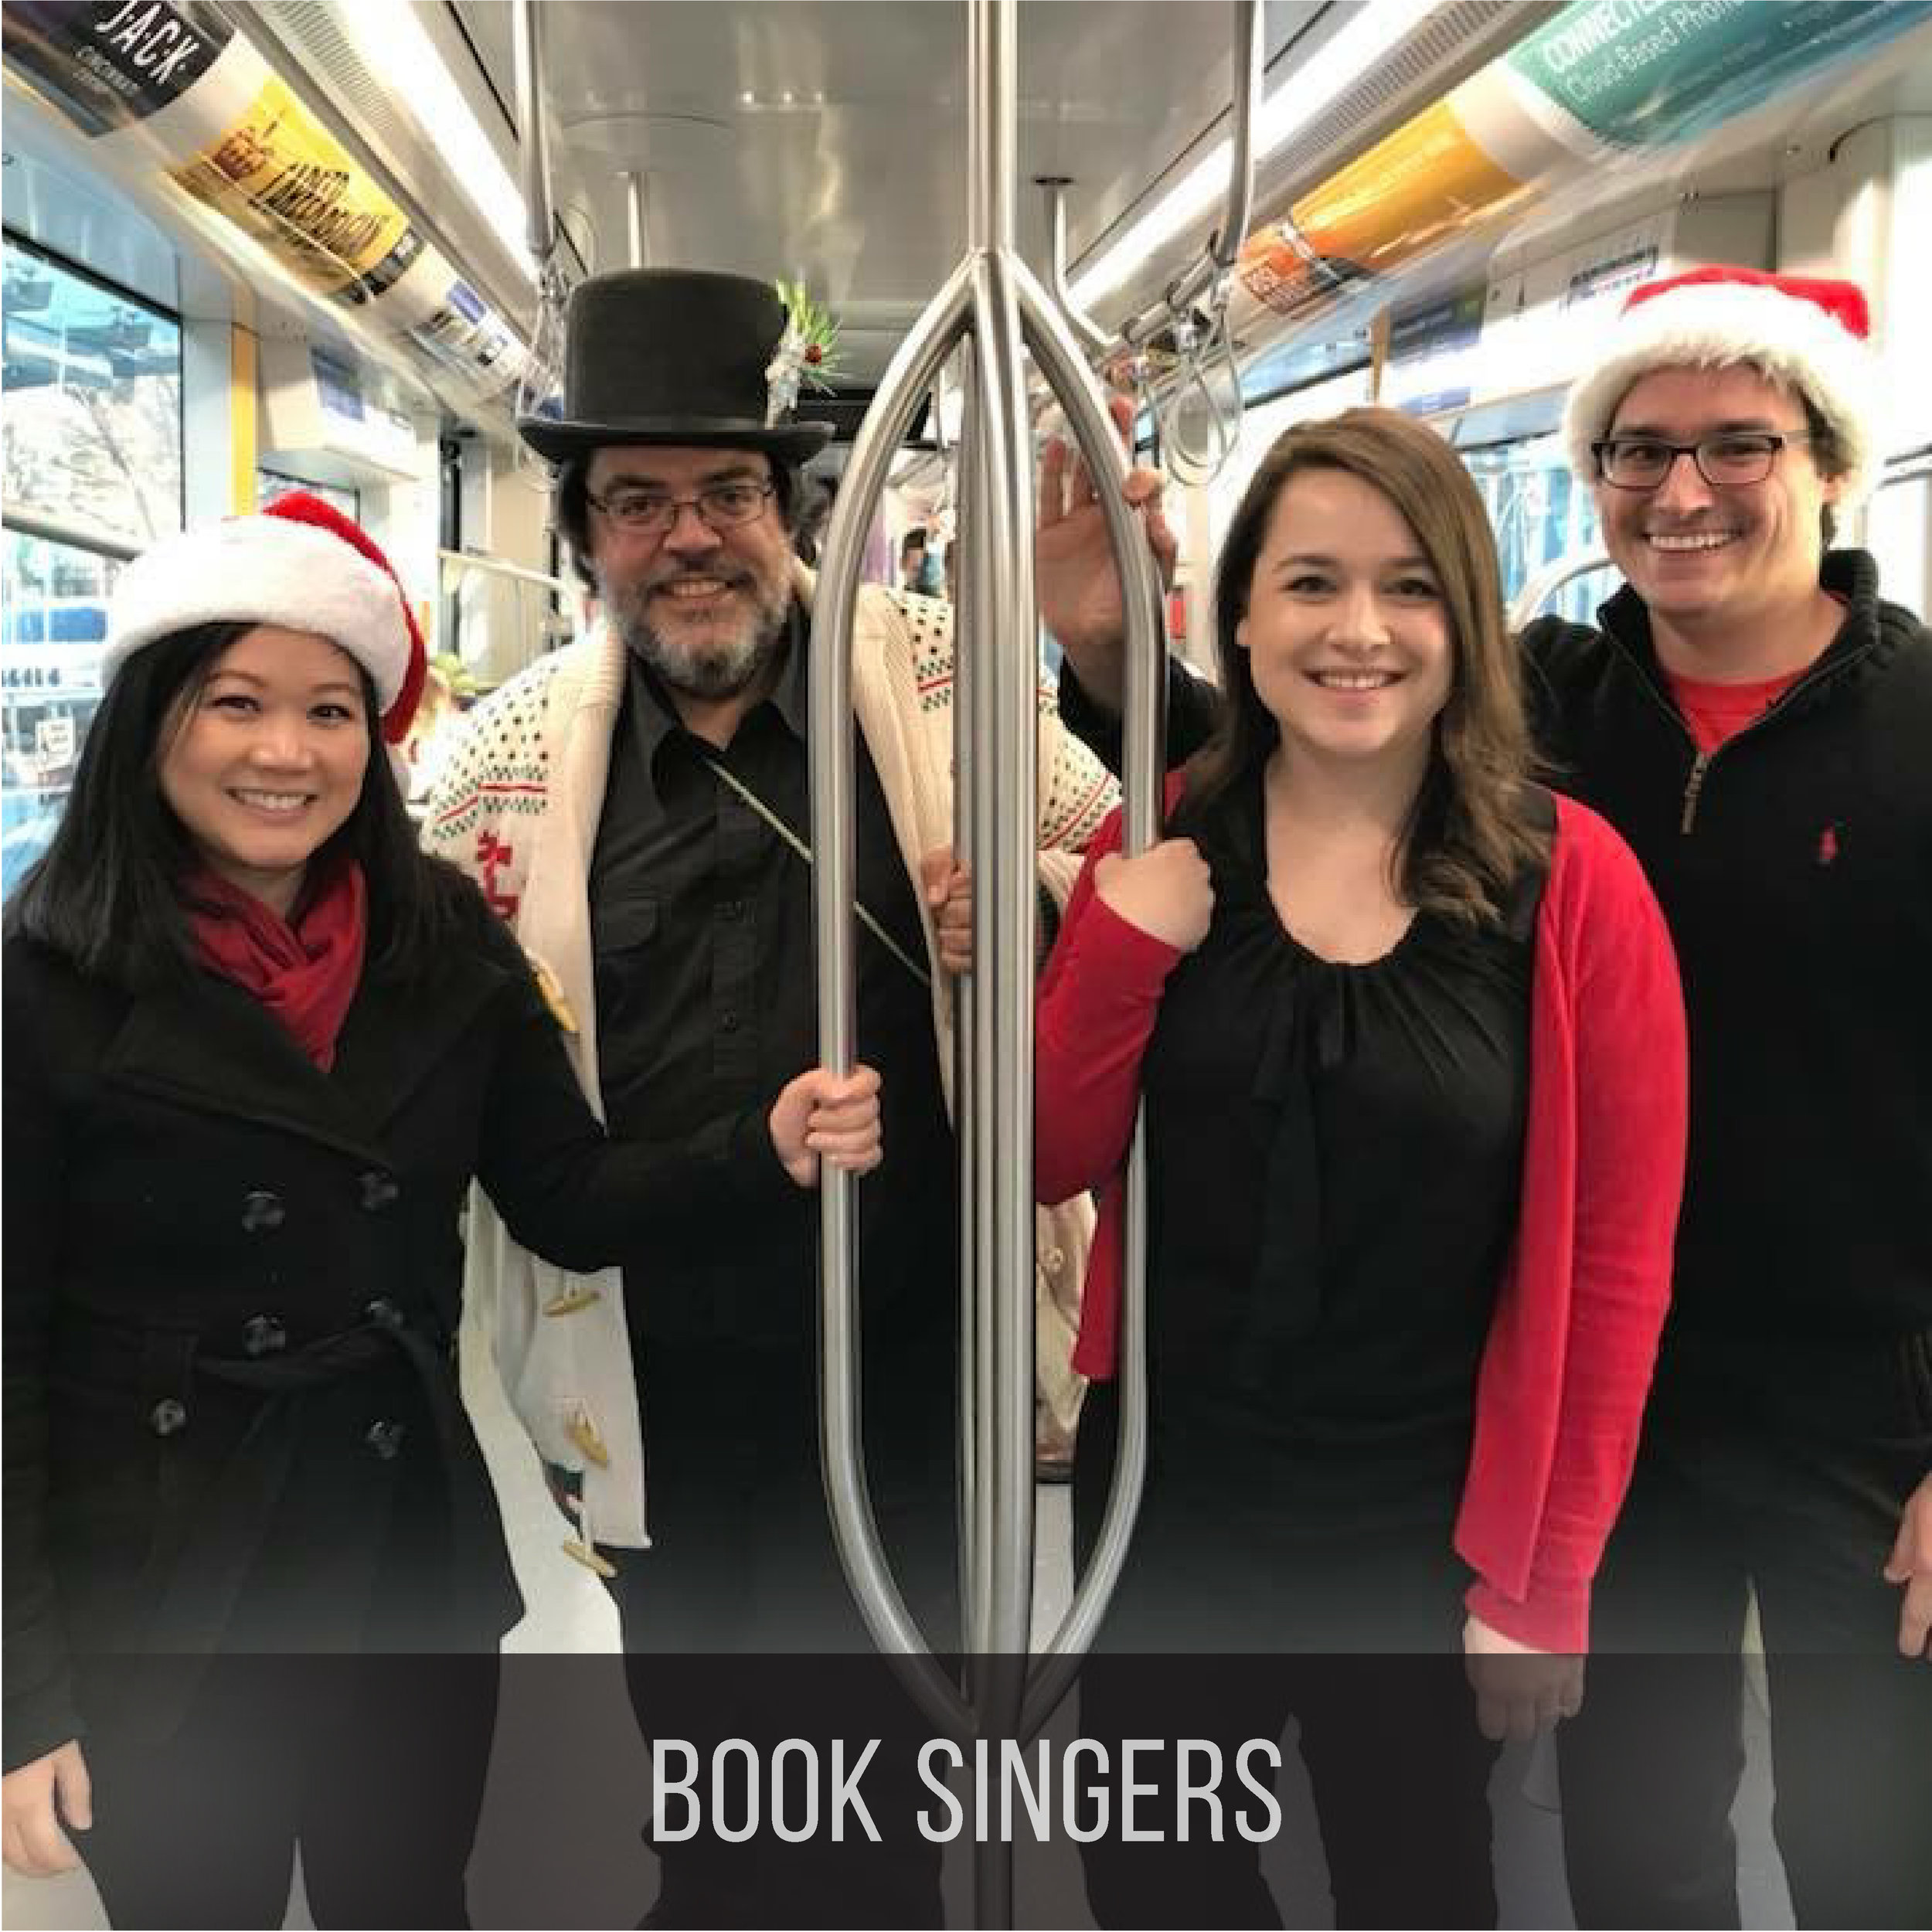 Home_Page_Image_Book_Singers_1.jpg